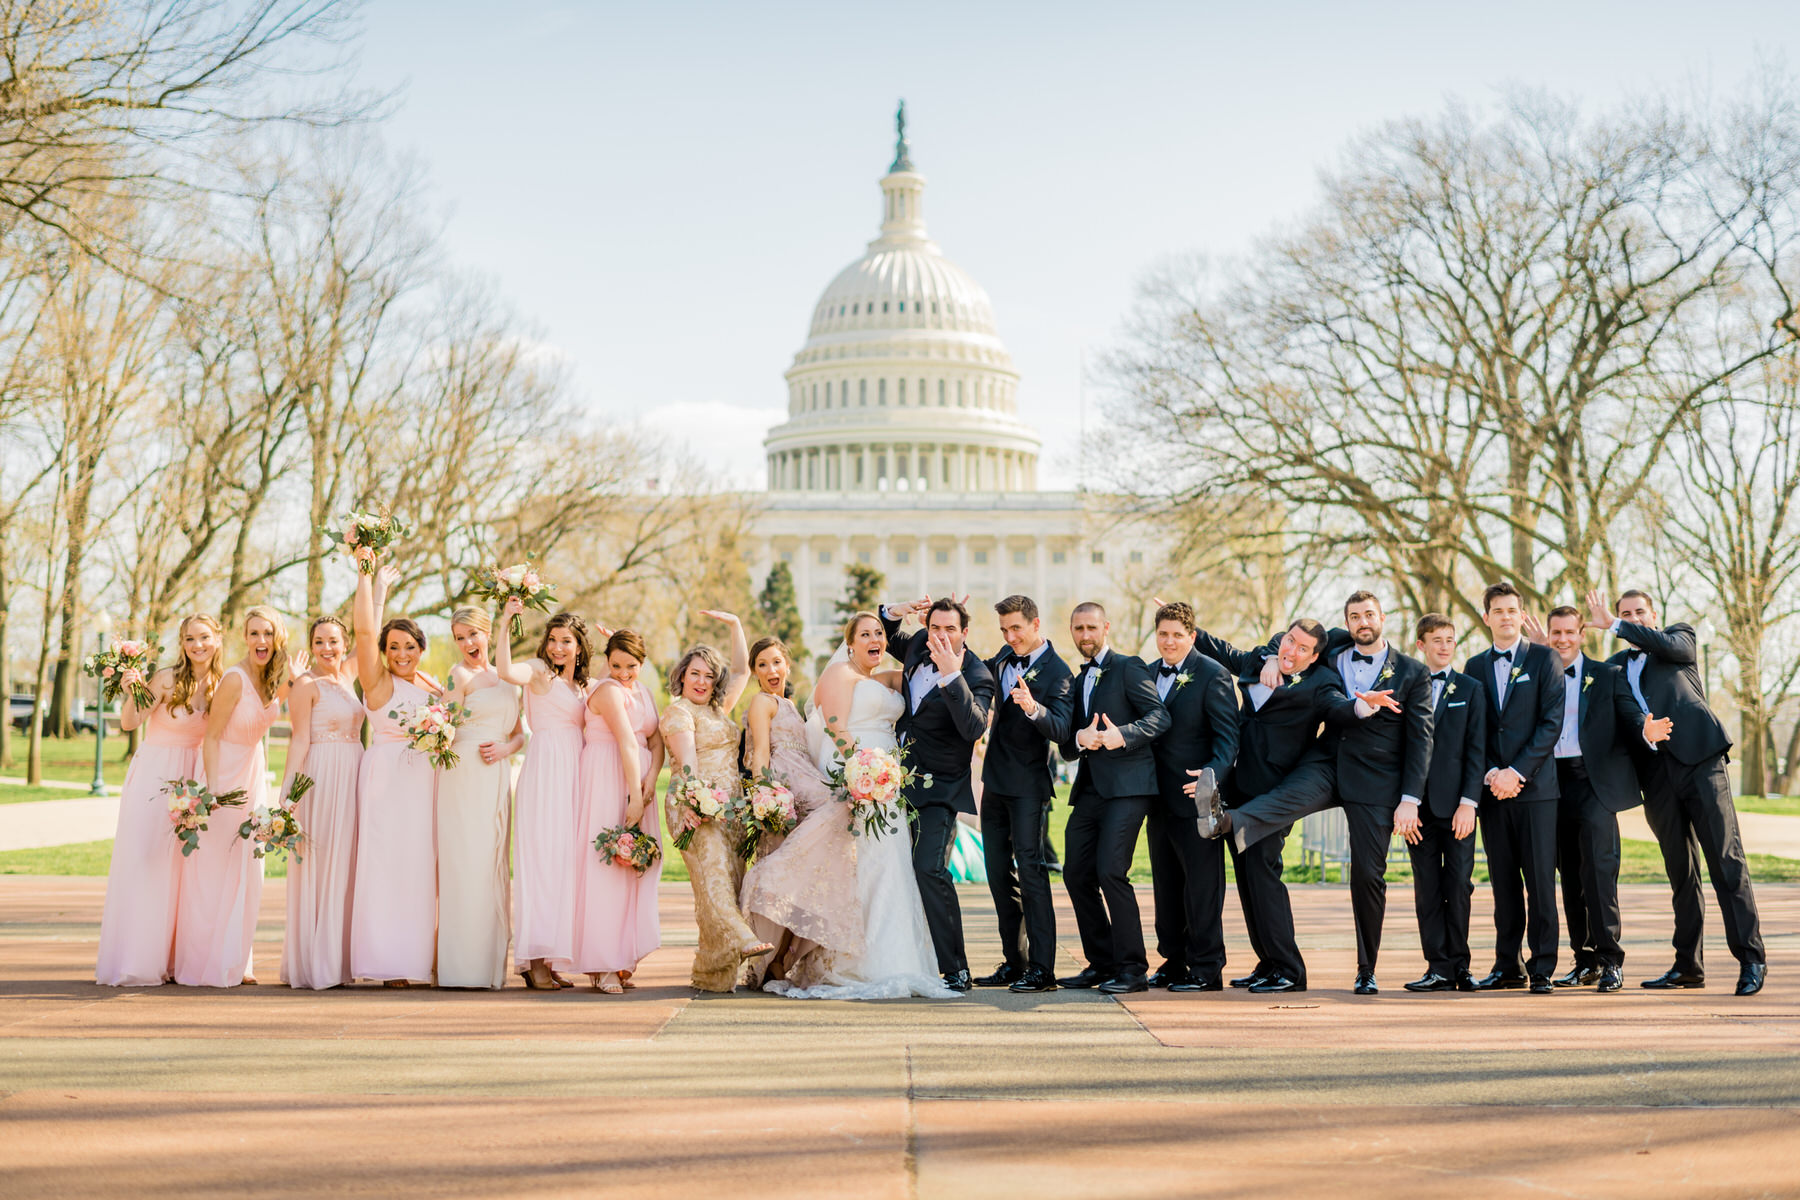 wedding portraits and bridal party photos in front of capitol by Washington DC Wedding Photographer Adam Mason